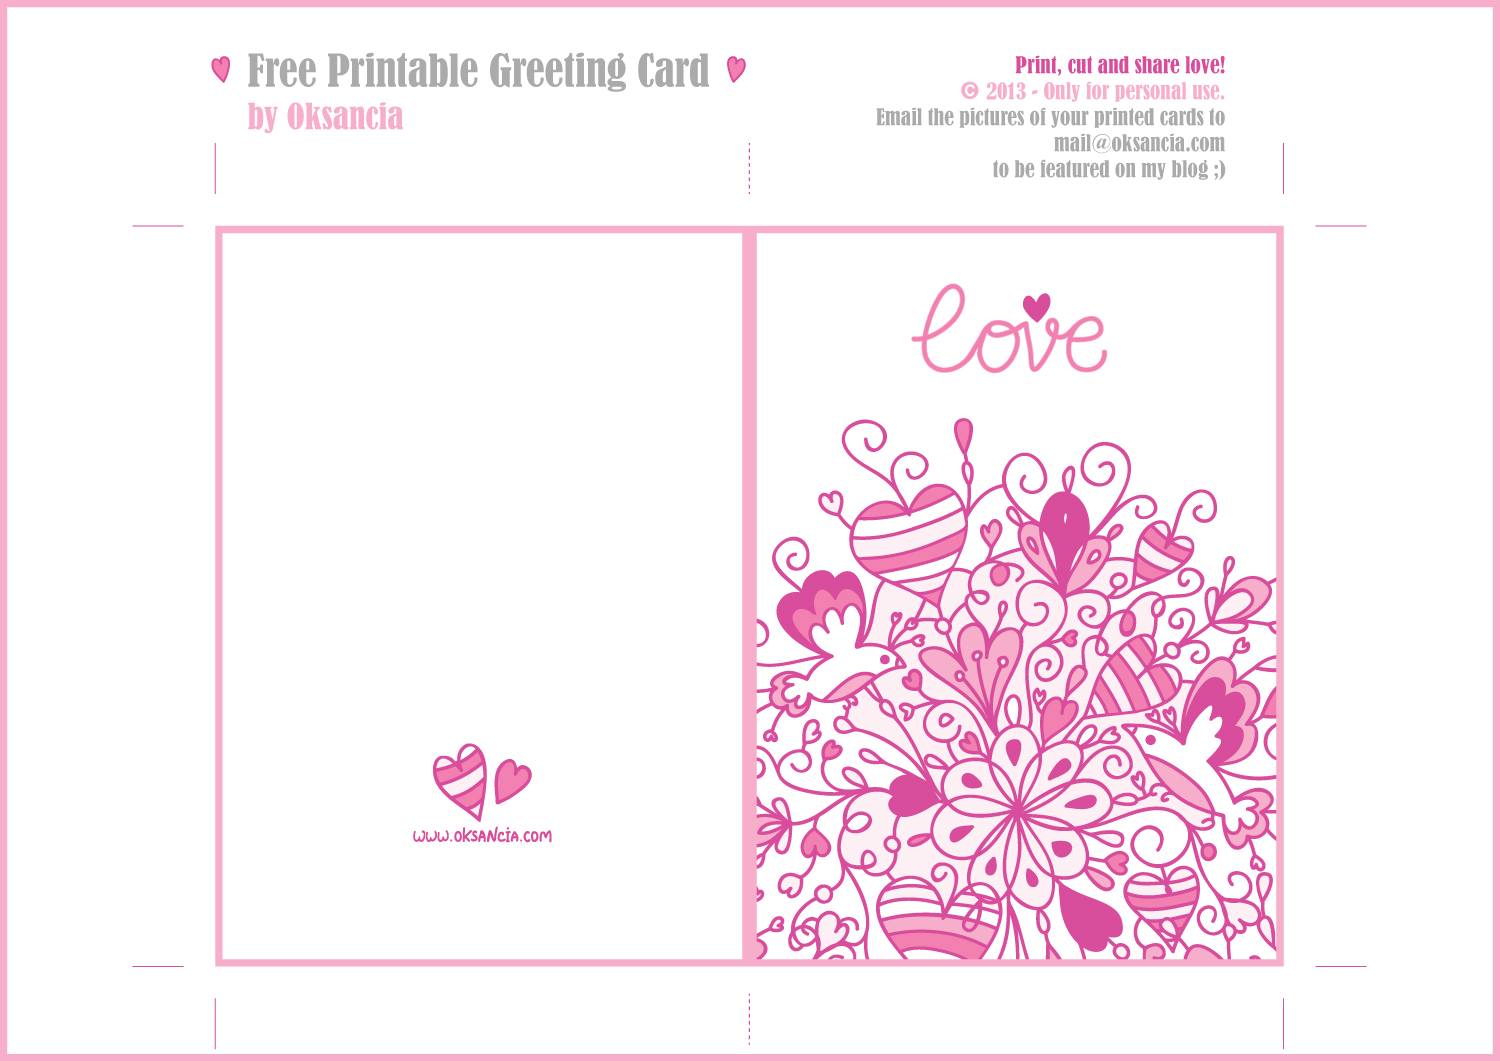 6 Images of Printable Love Greeting Card